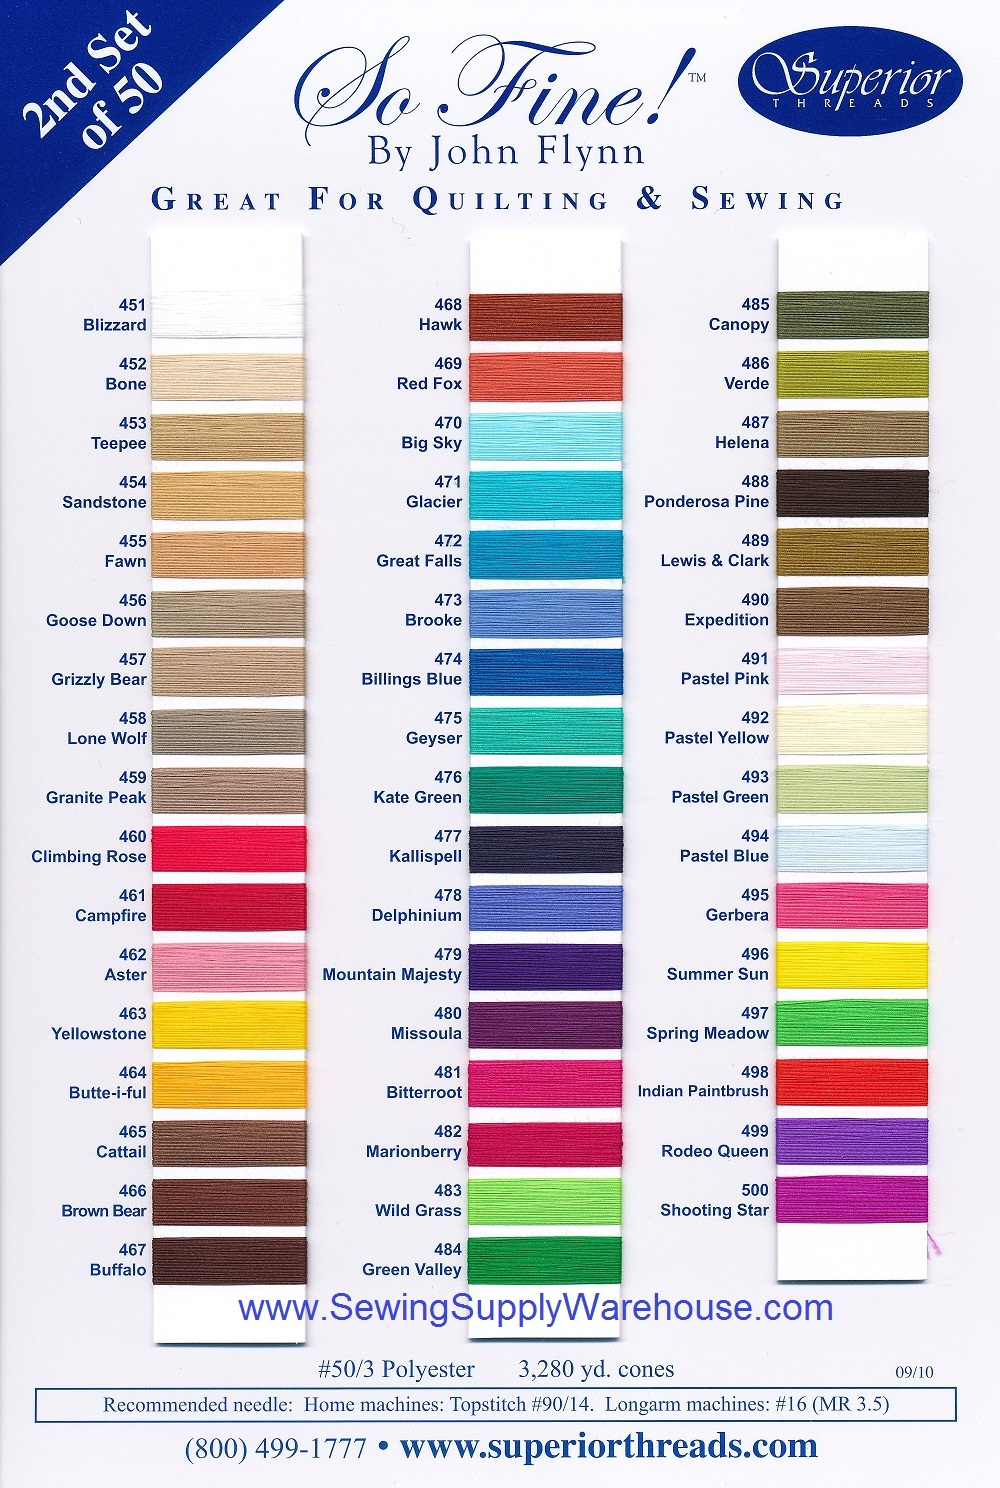 Brother embroidery thread color chart pdf brother embroidery coats and clark embroidery thread color chart images free any nvjuhfo Image collections